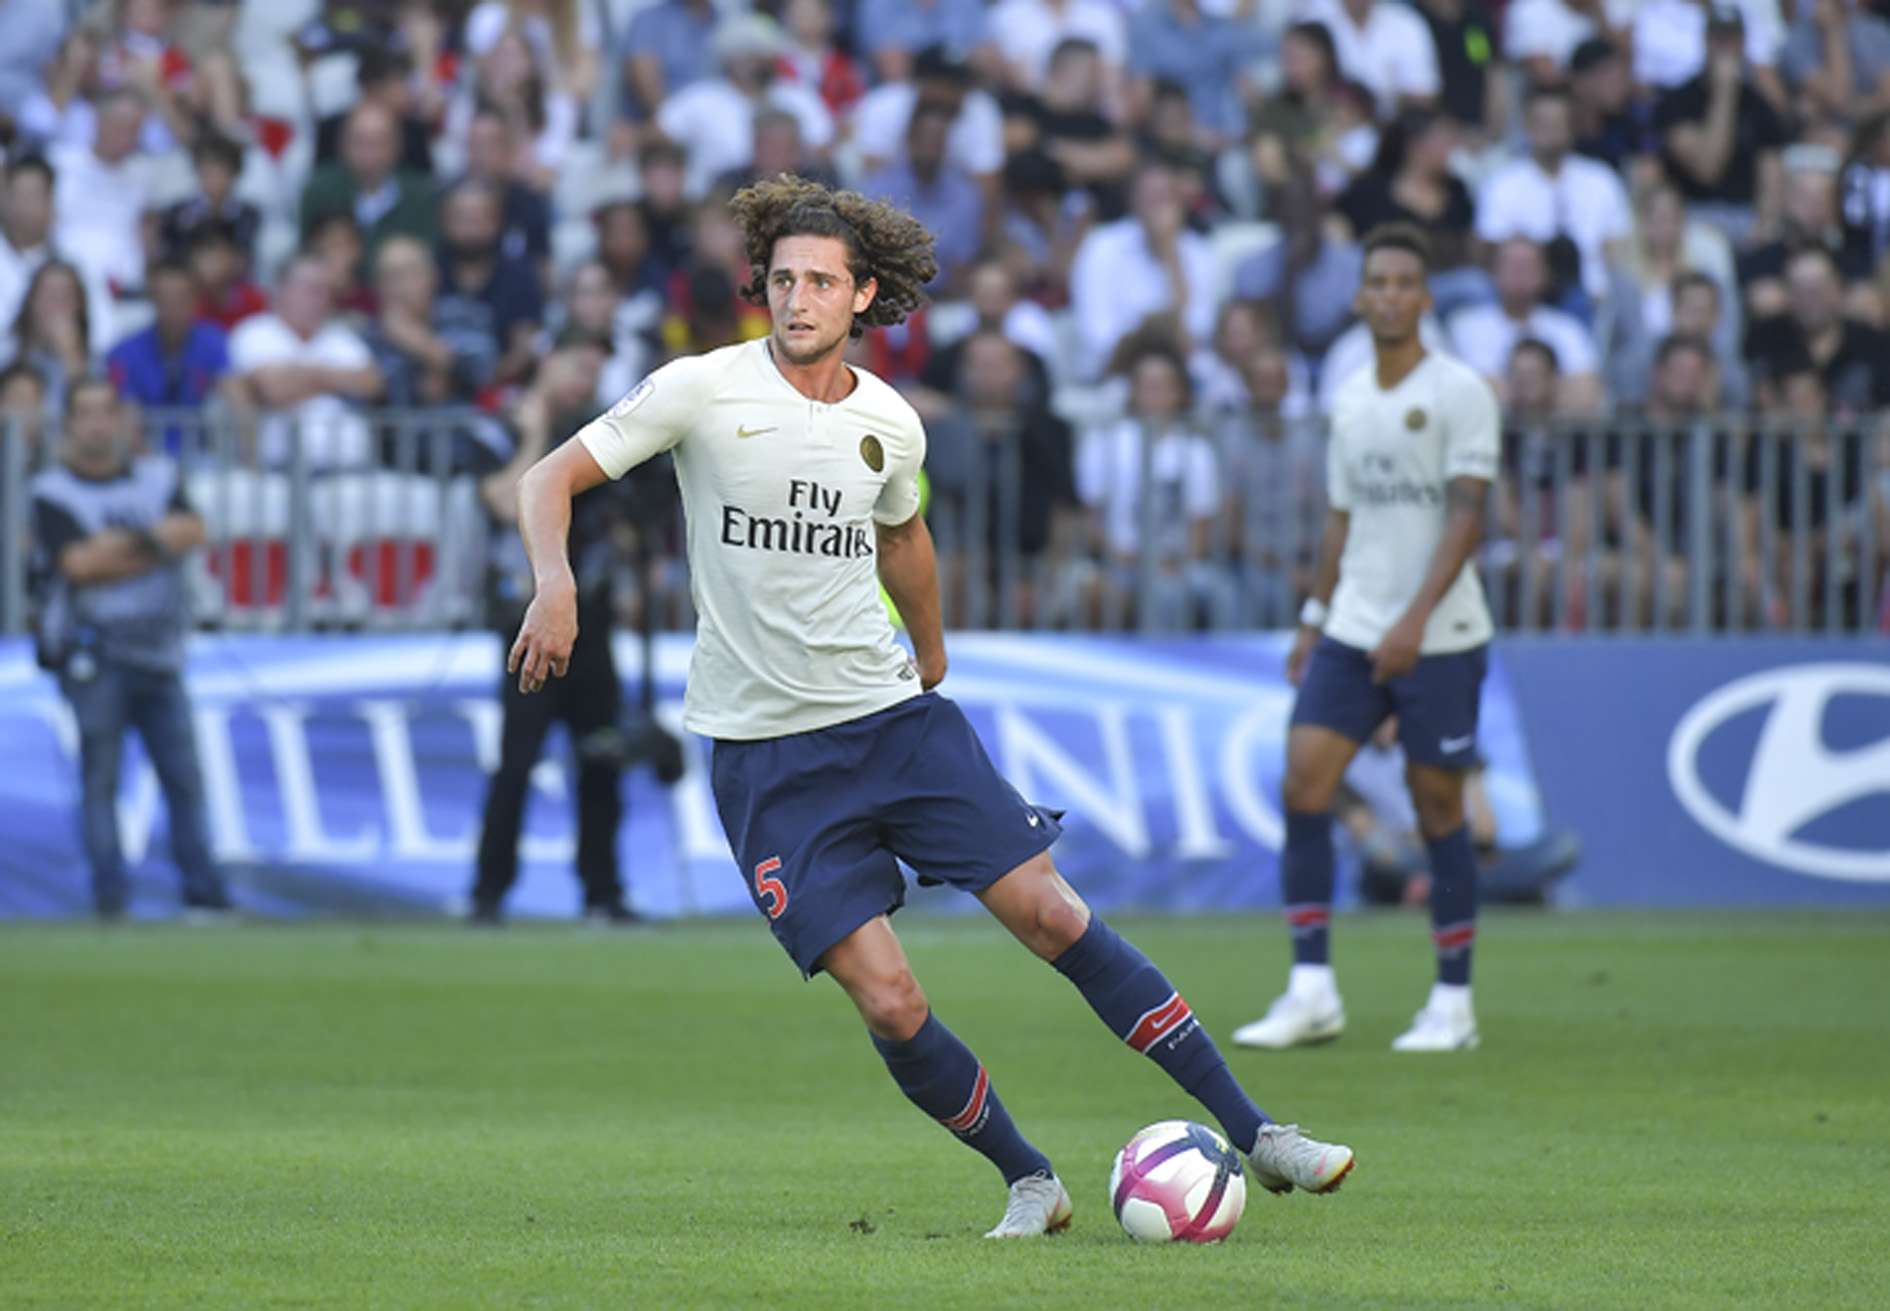 Le journal du mercato : Rabiot, enfin la prolongation ?